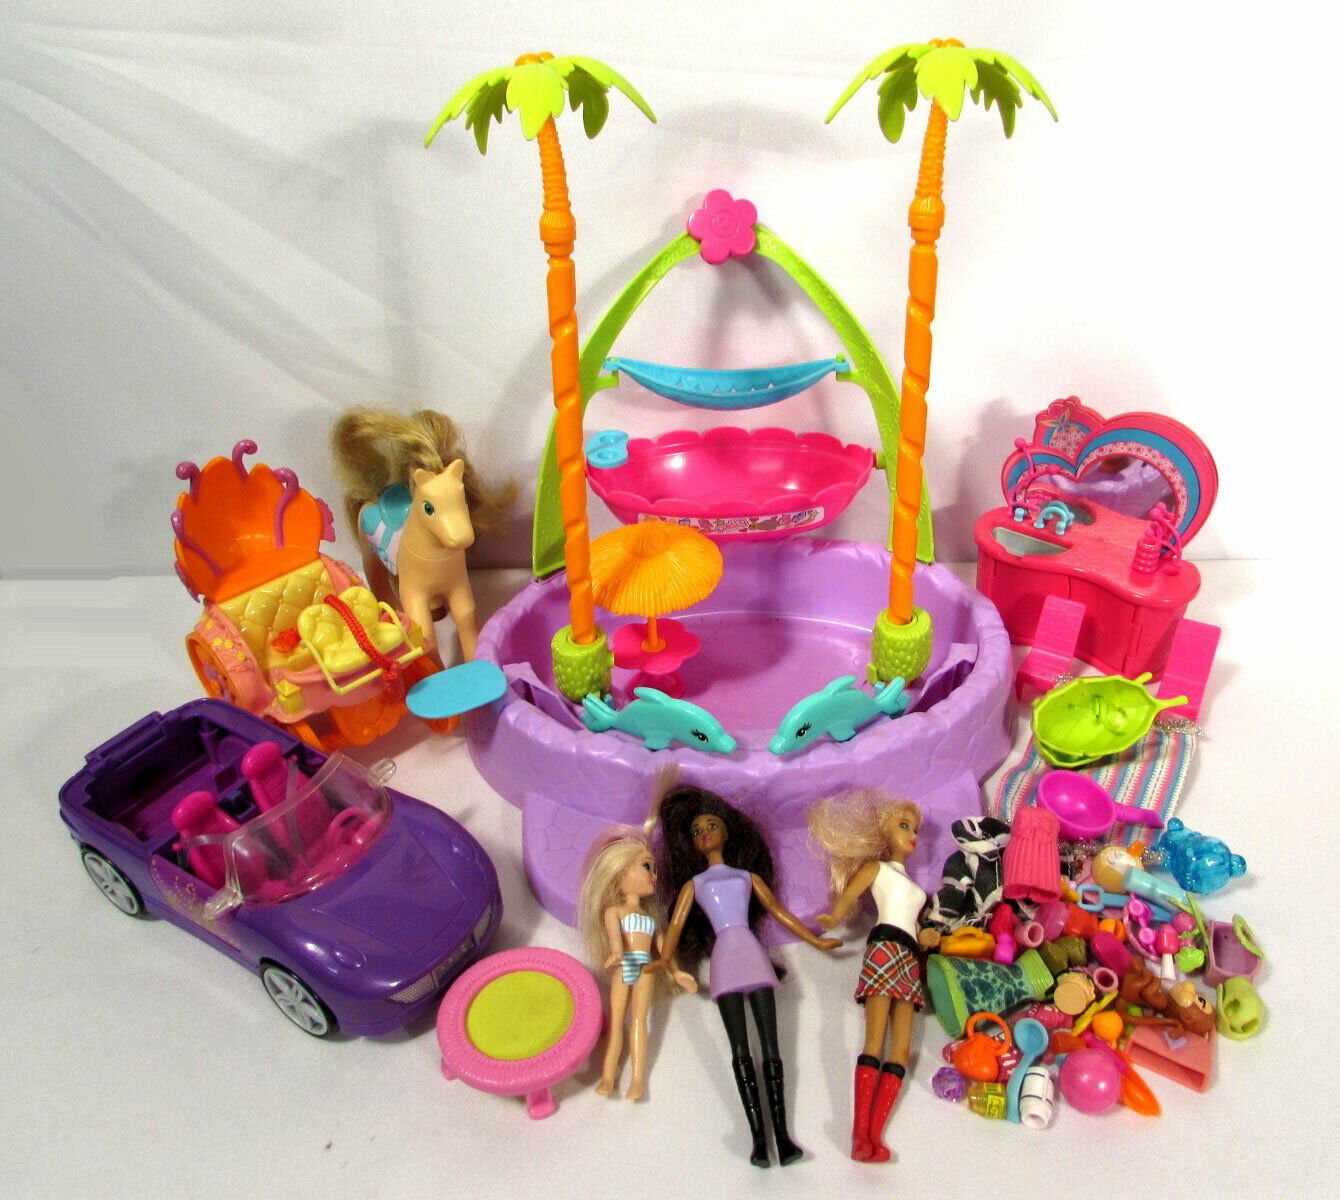 Lot of Mattel Polly Pocket Dolls (3) Accessories Beach Sink Car Carriage +